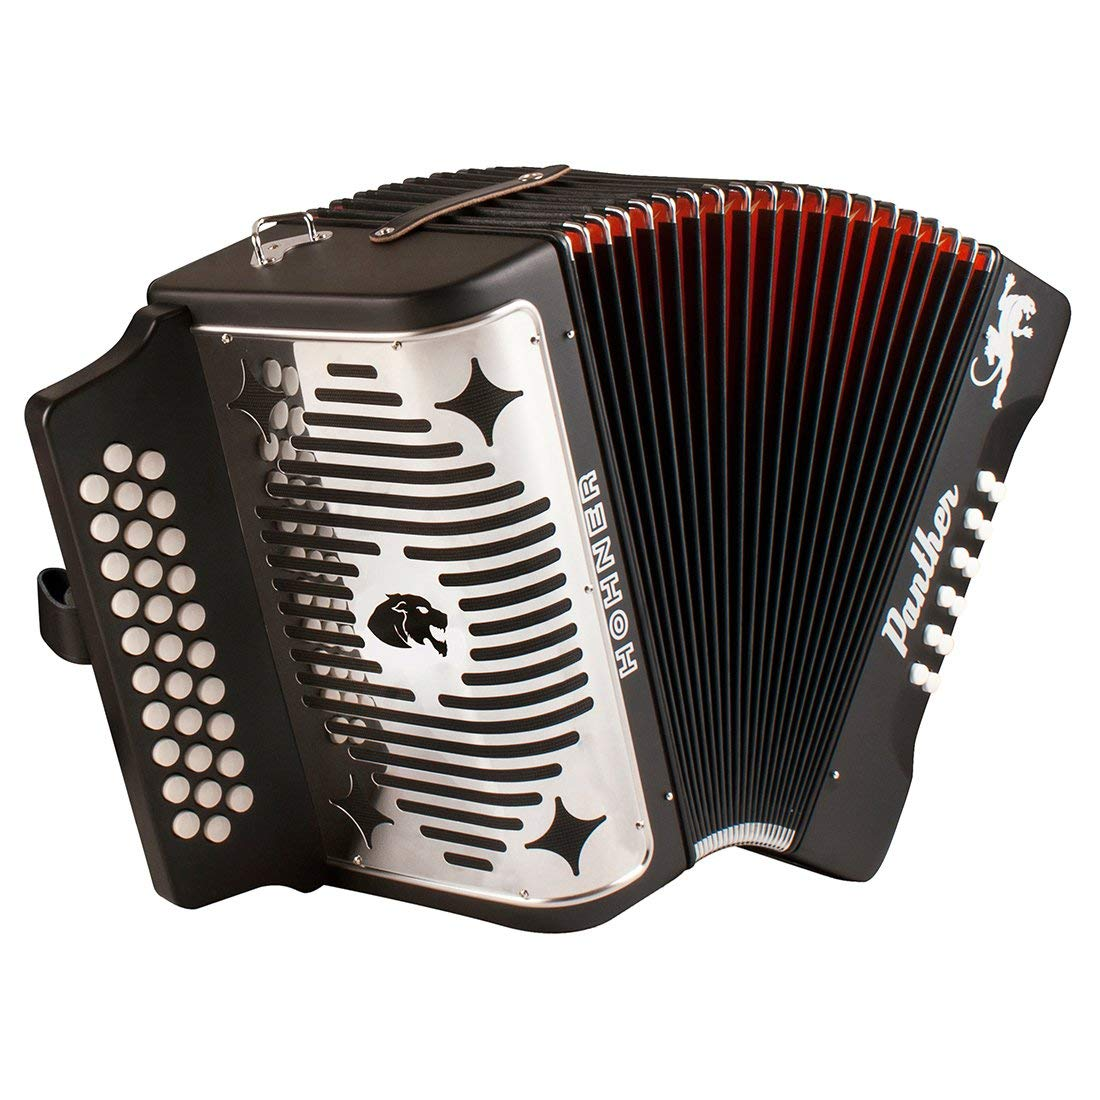 Hohner Panther 3100FB Diatonic Accordion Comprehensive Starter Kit with Gig Bag, Instruction Book and Cleaning Cloth by Hohner Accordions (Image #2)